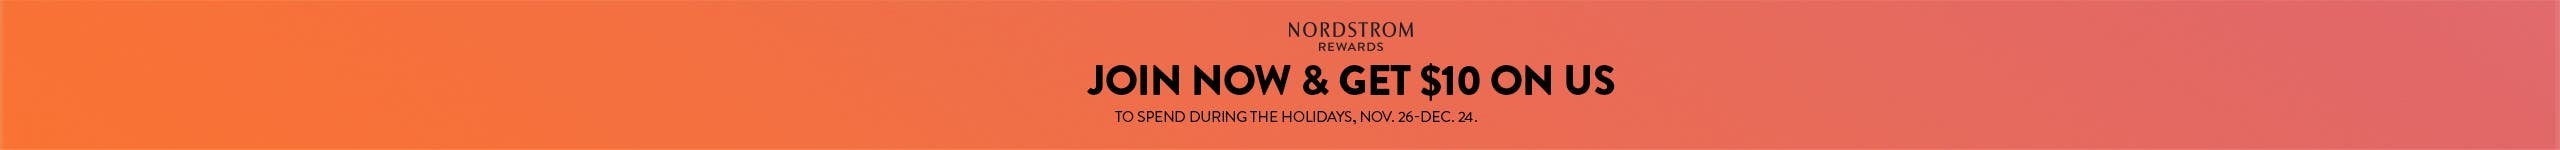 Nordstrom Rewards: Join now and get $10 on us to spend during the holidays, Nov. 26-Dec. 24.